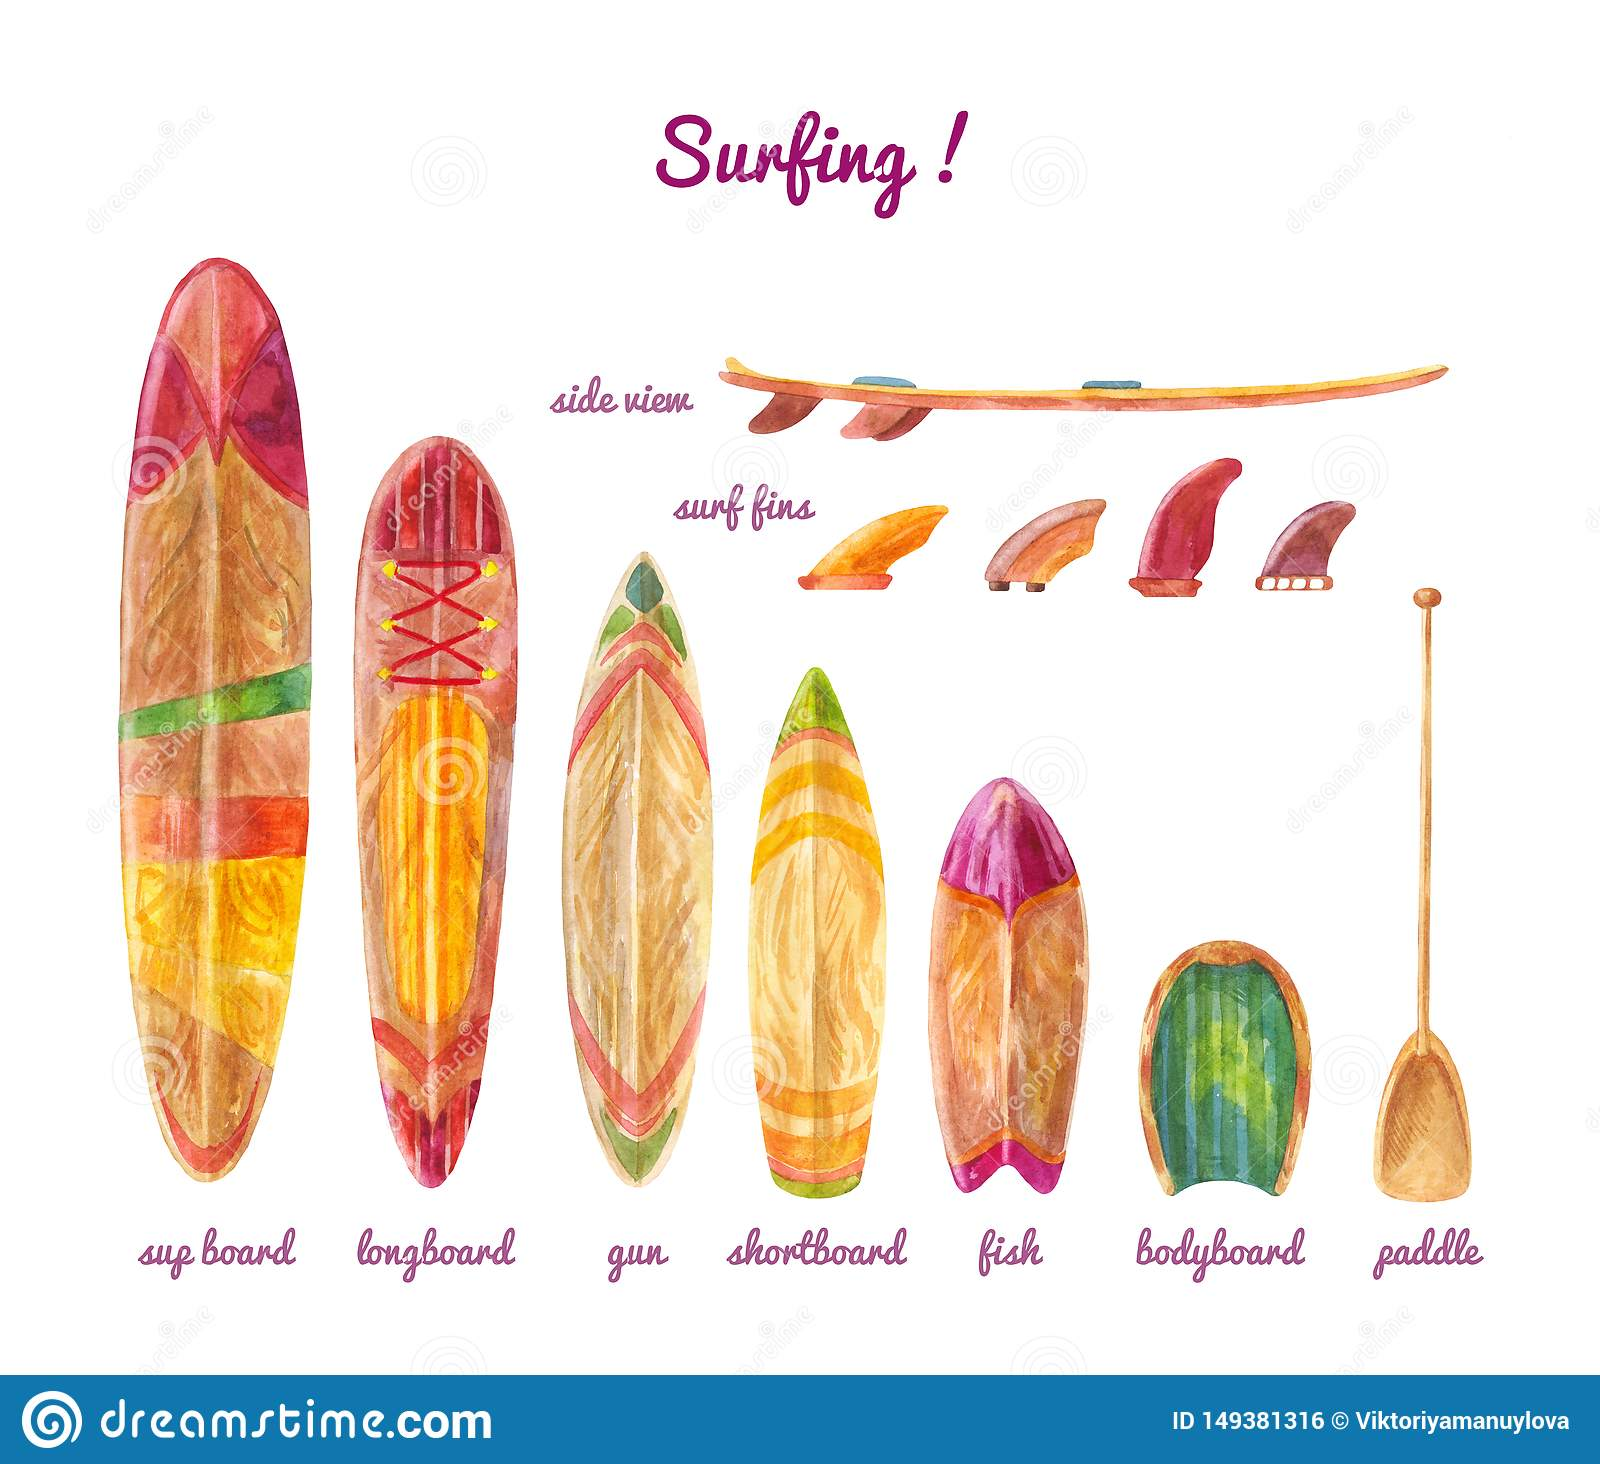 Surfboards Of Different Lengths And Types. Watercolor